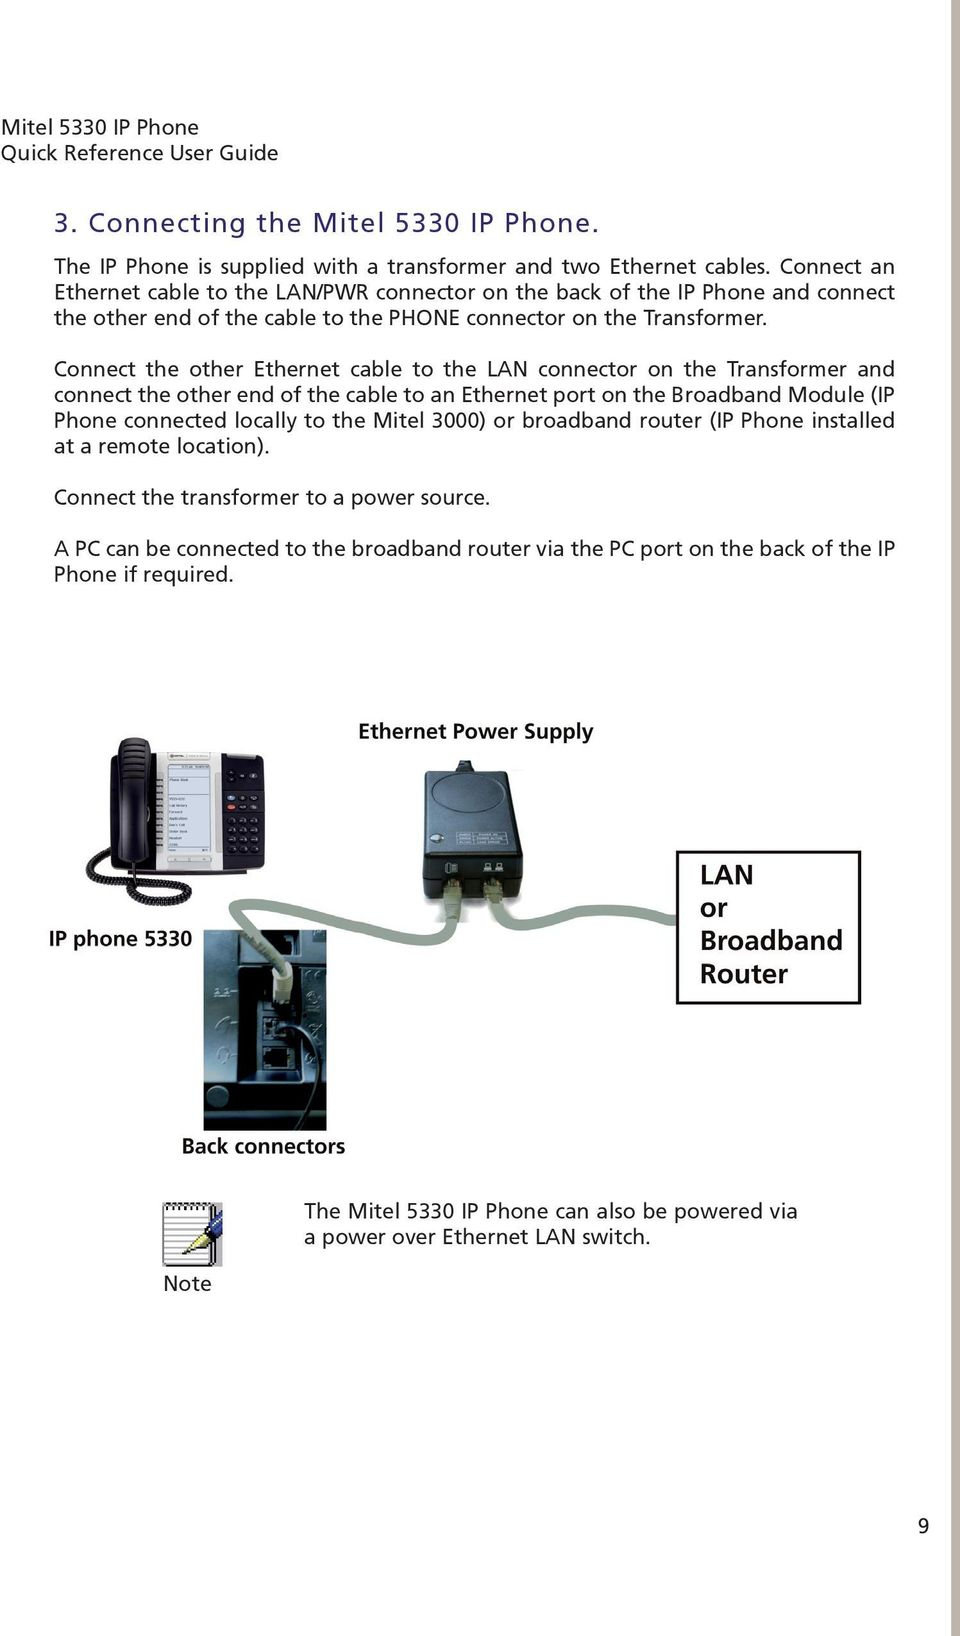 Connect the other Ethernet cable to the LAN connector on the Transformer and connect the other end of the cable to an Ethernet port on the Broadband Module (IP Phone connected locally to the